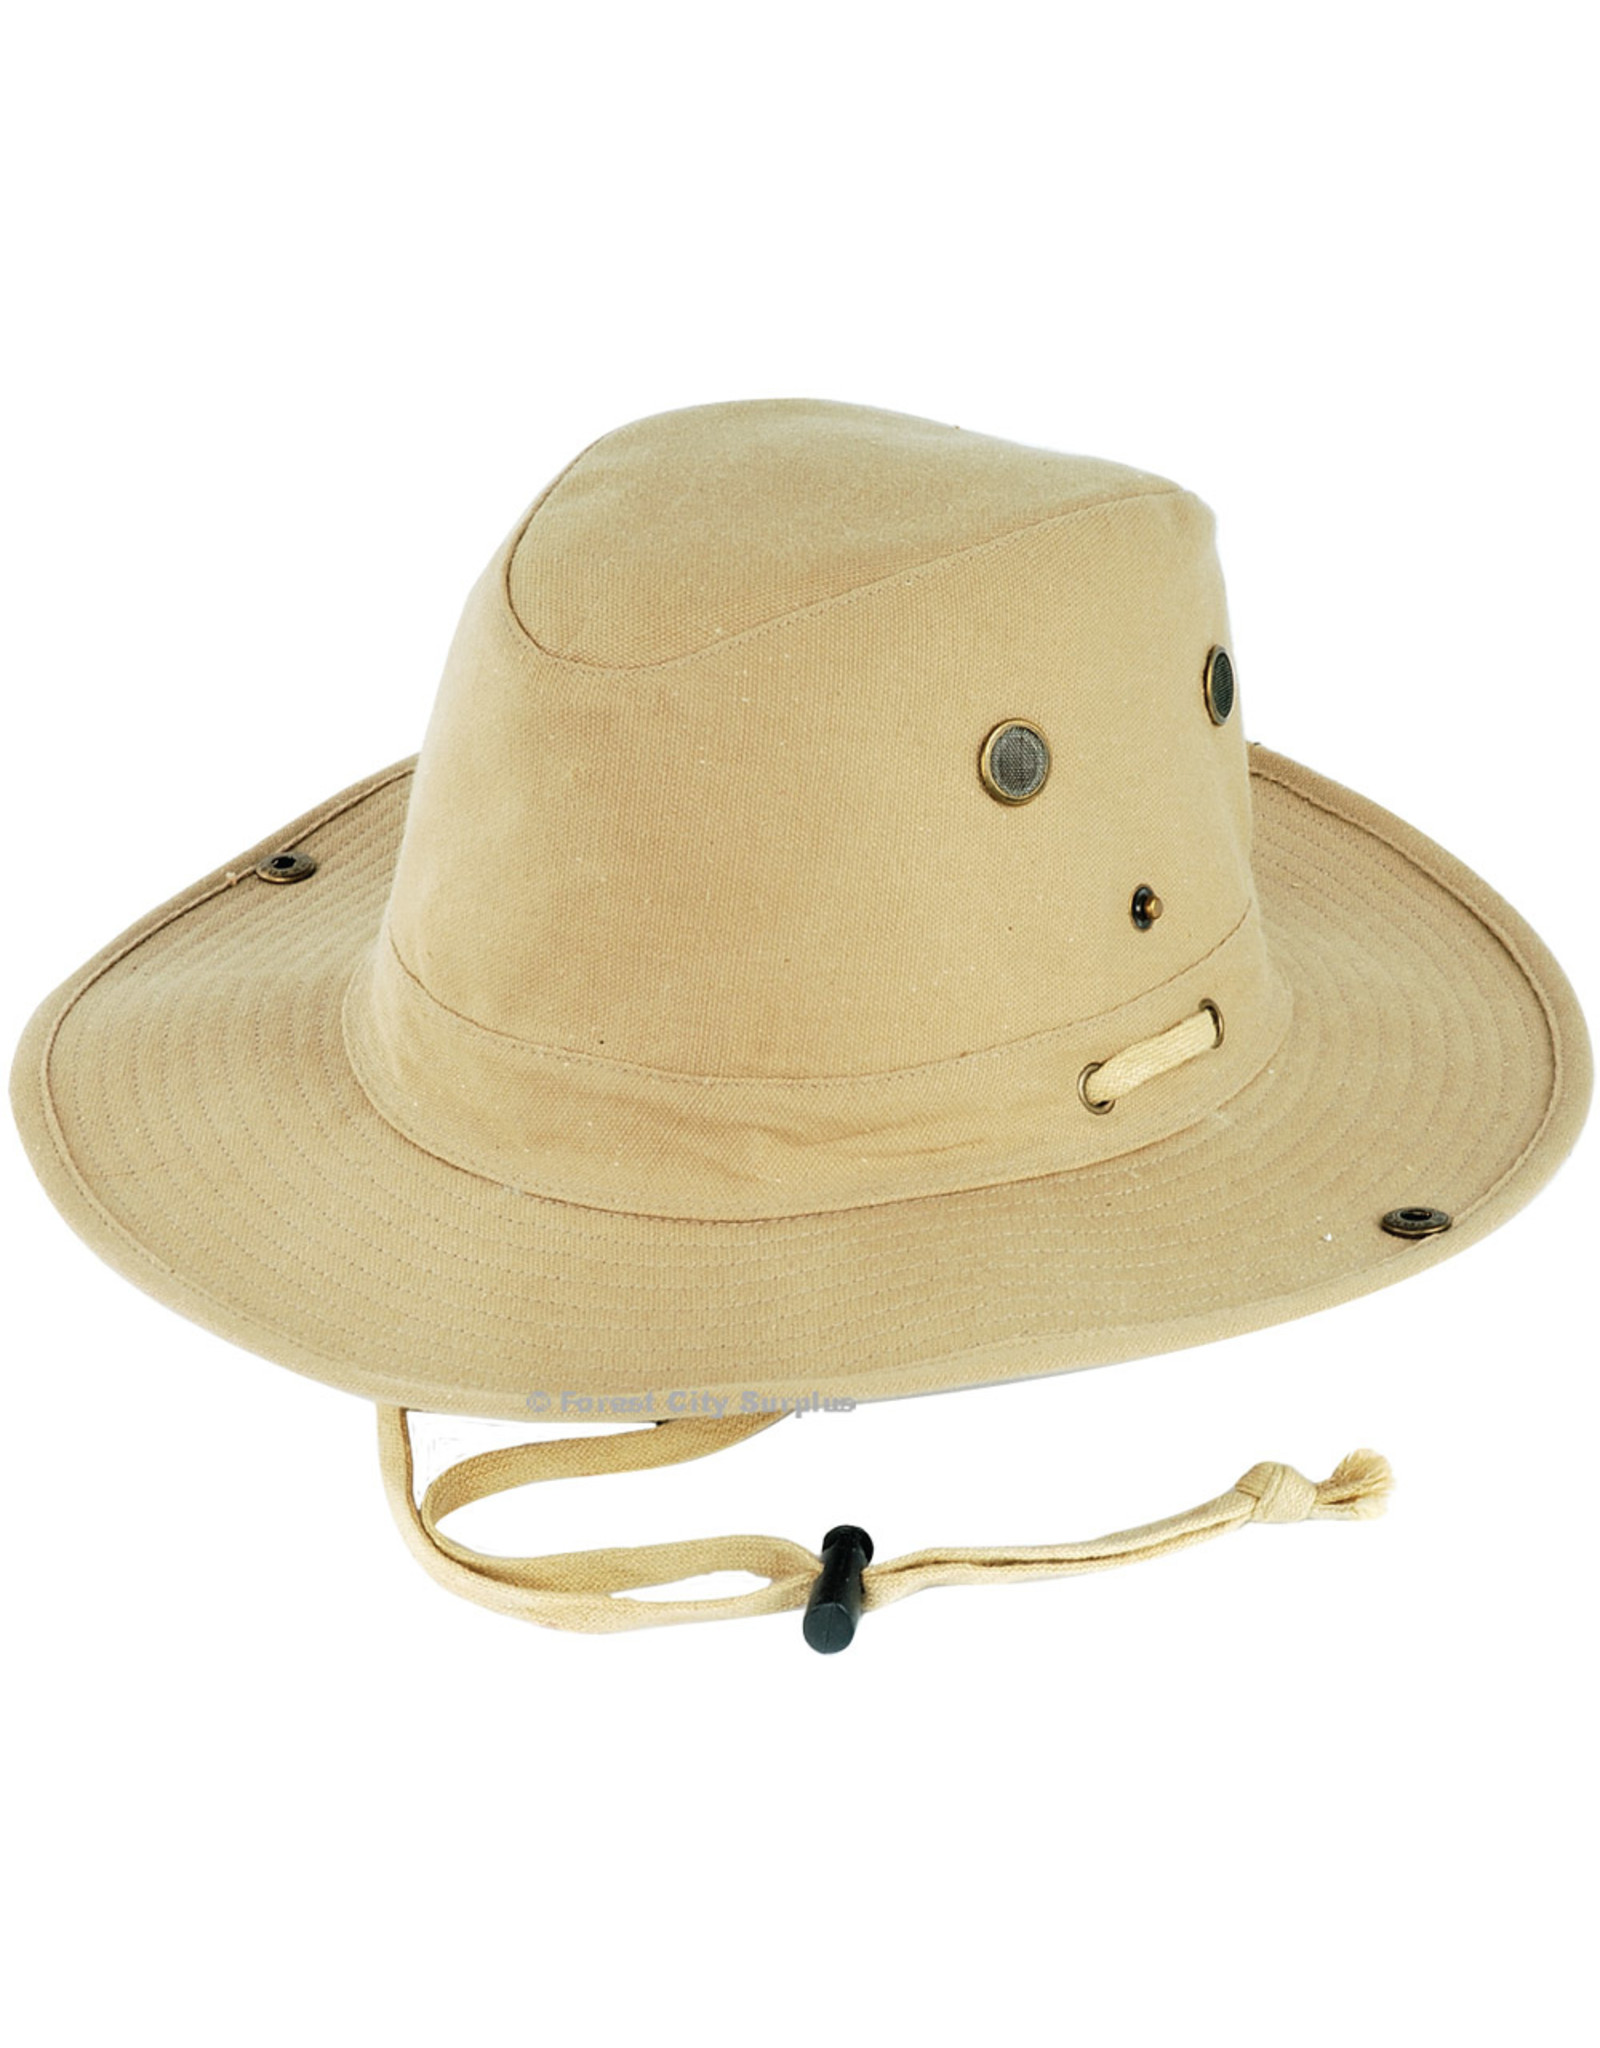 MISTY MOUNTAIN MM OUTBACK HAT